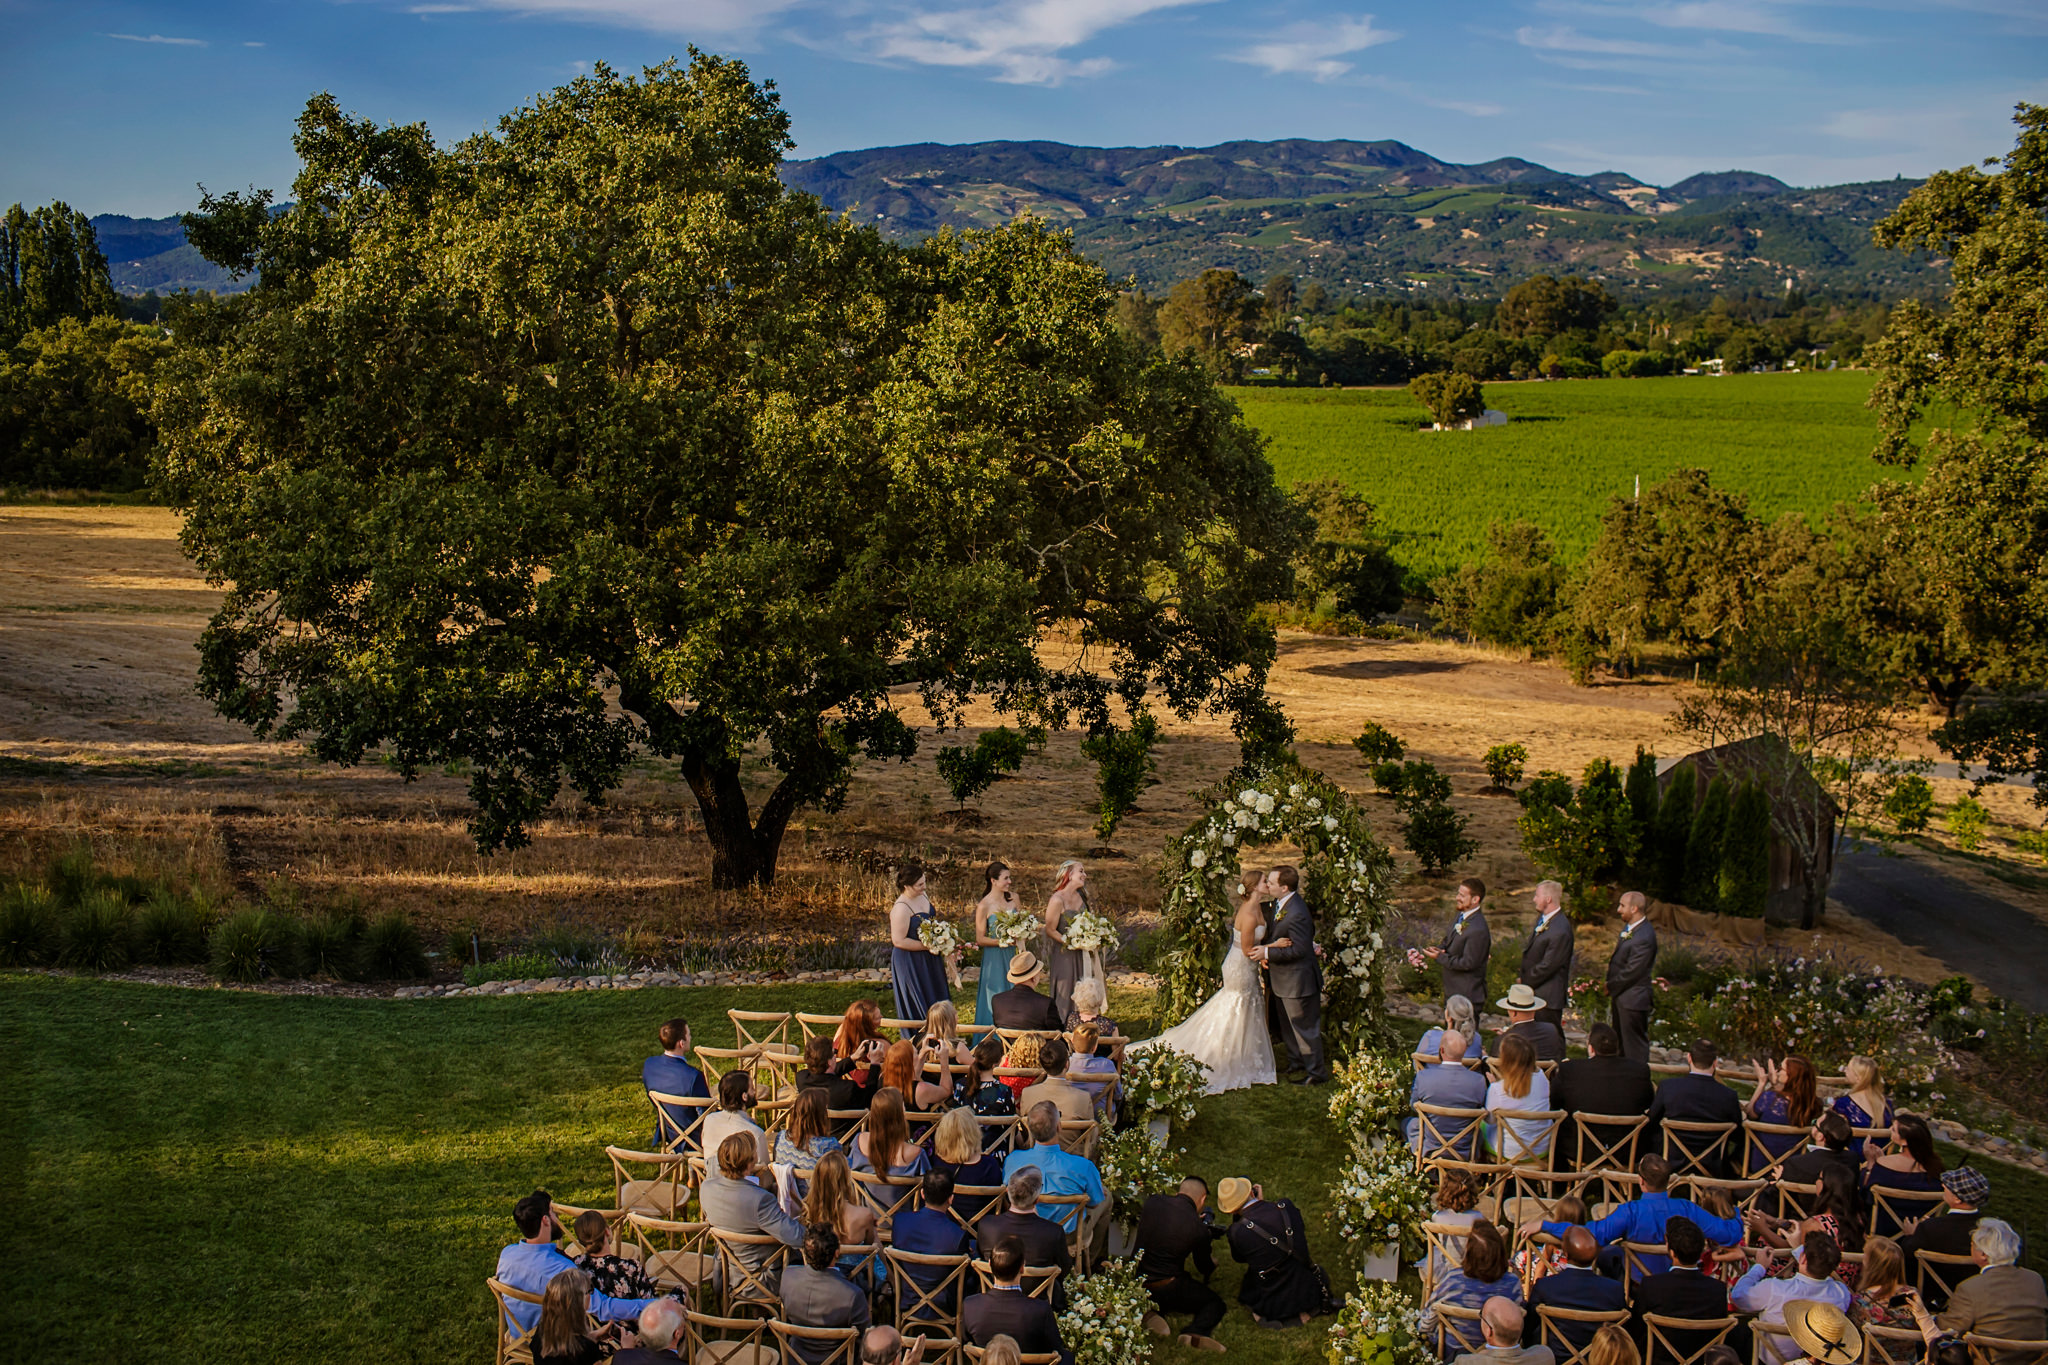 Jenny and Noel's wedding at the Nicholas Carriger Estate in Sonoma, California.